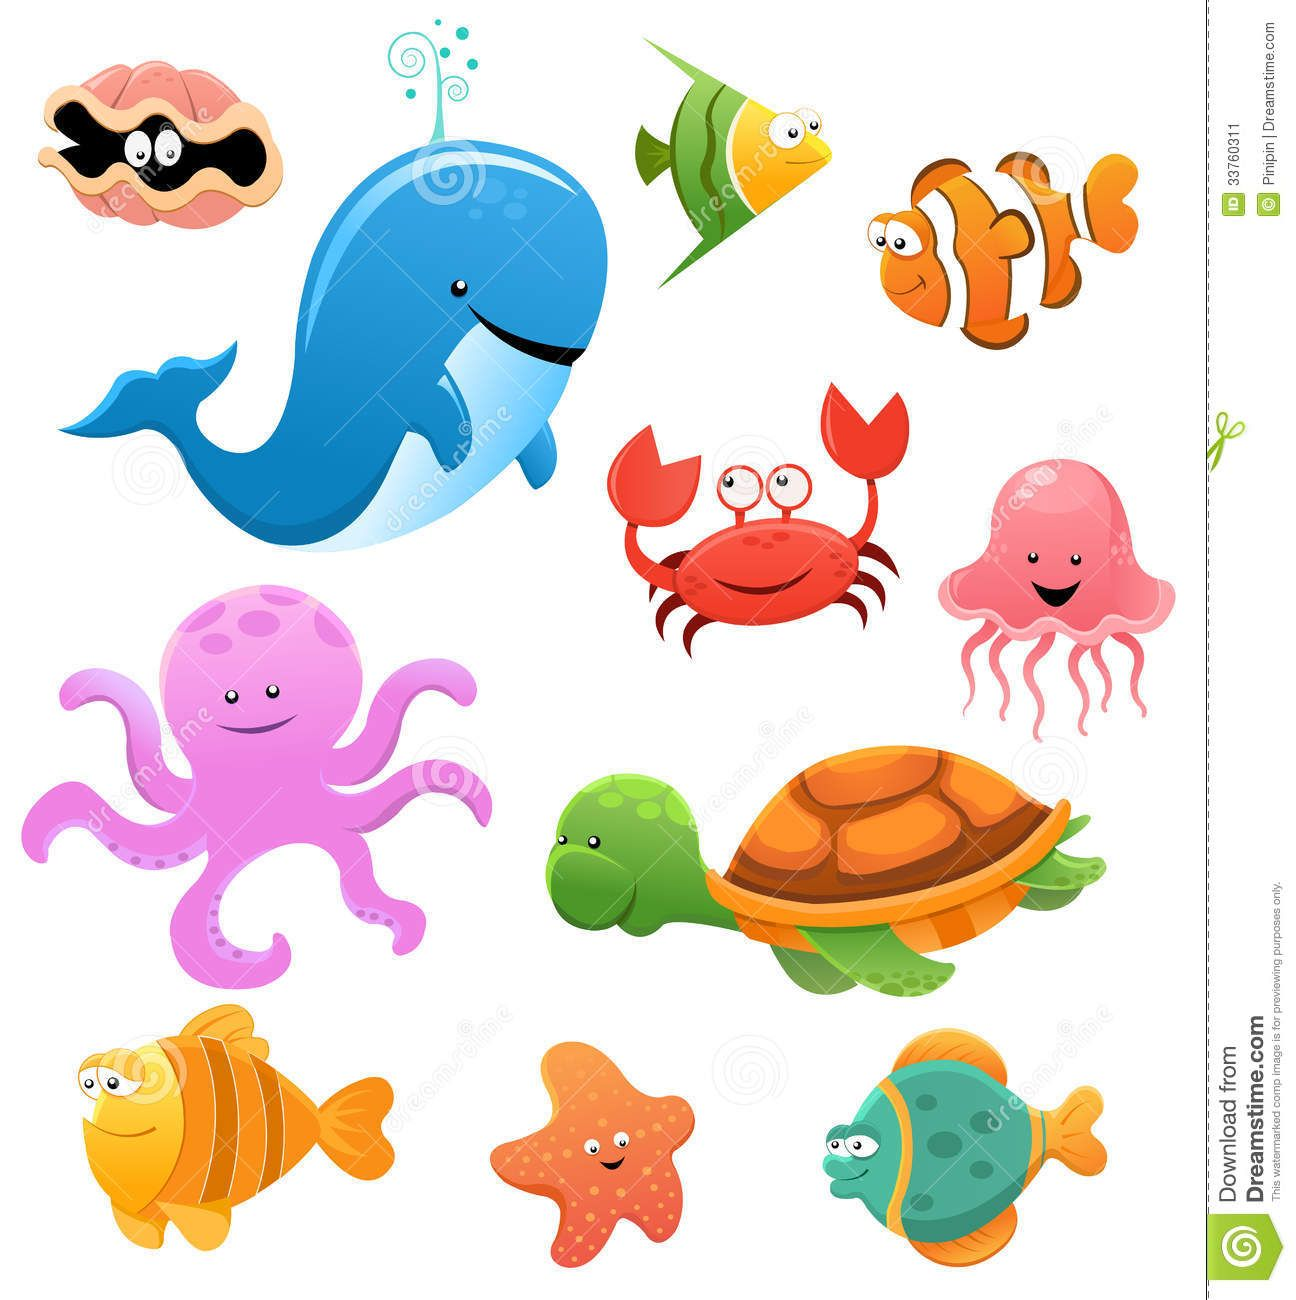 images of cartoon sea creatures Google Search see